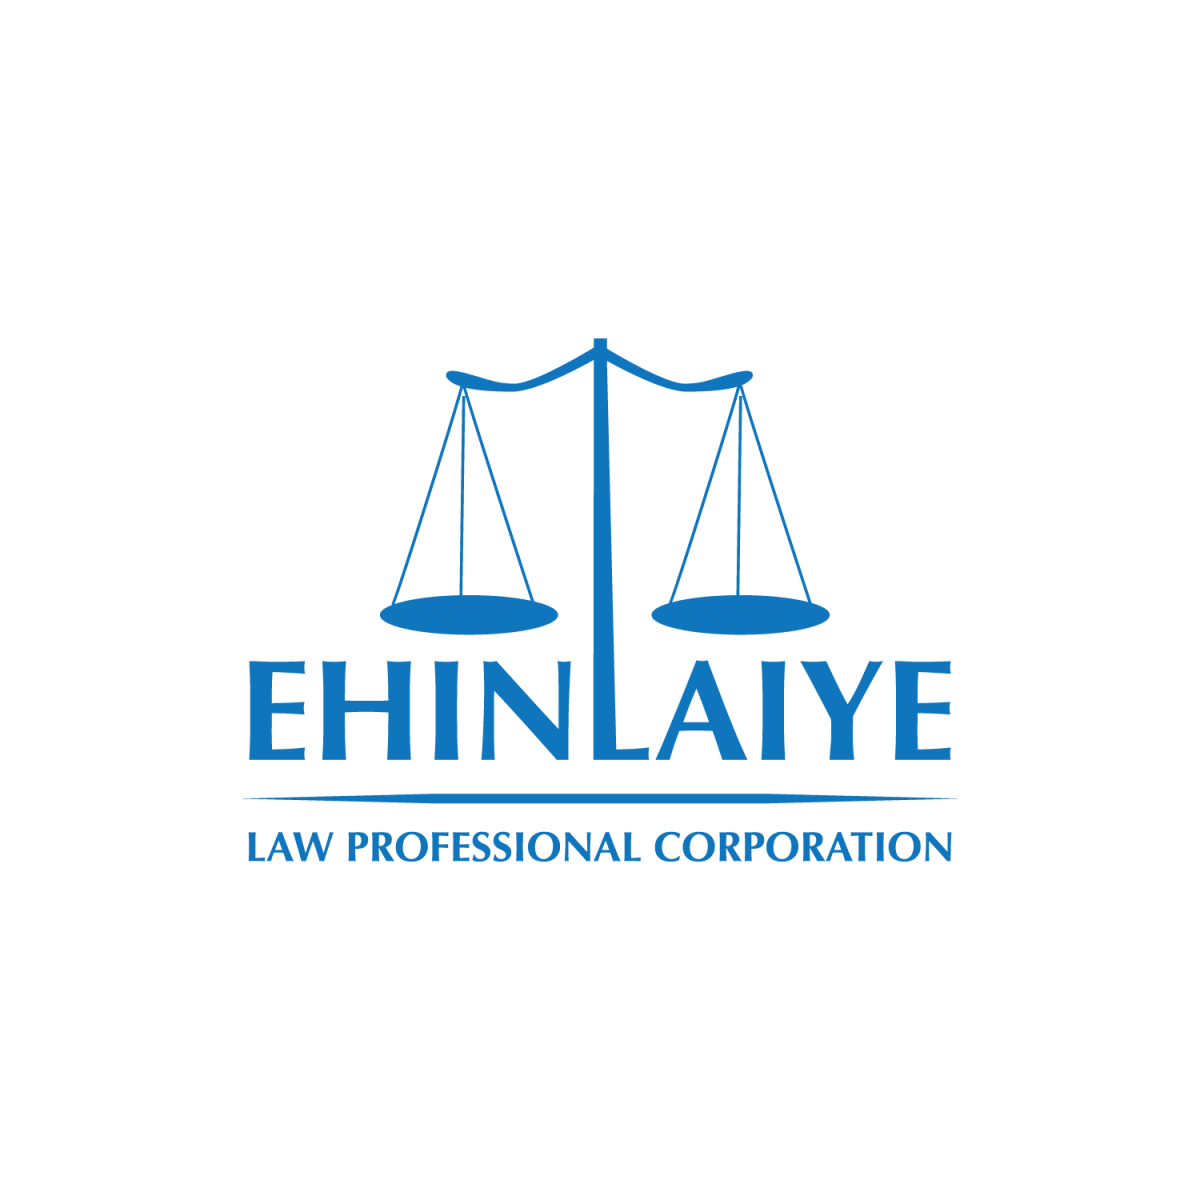 Ehinlaiye Law